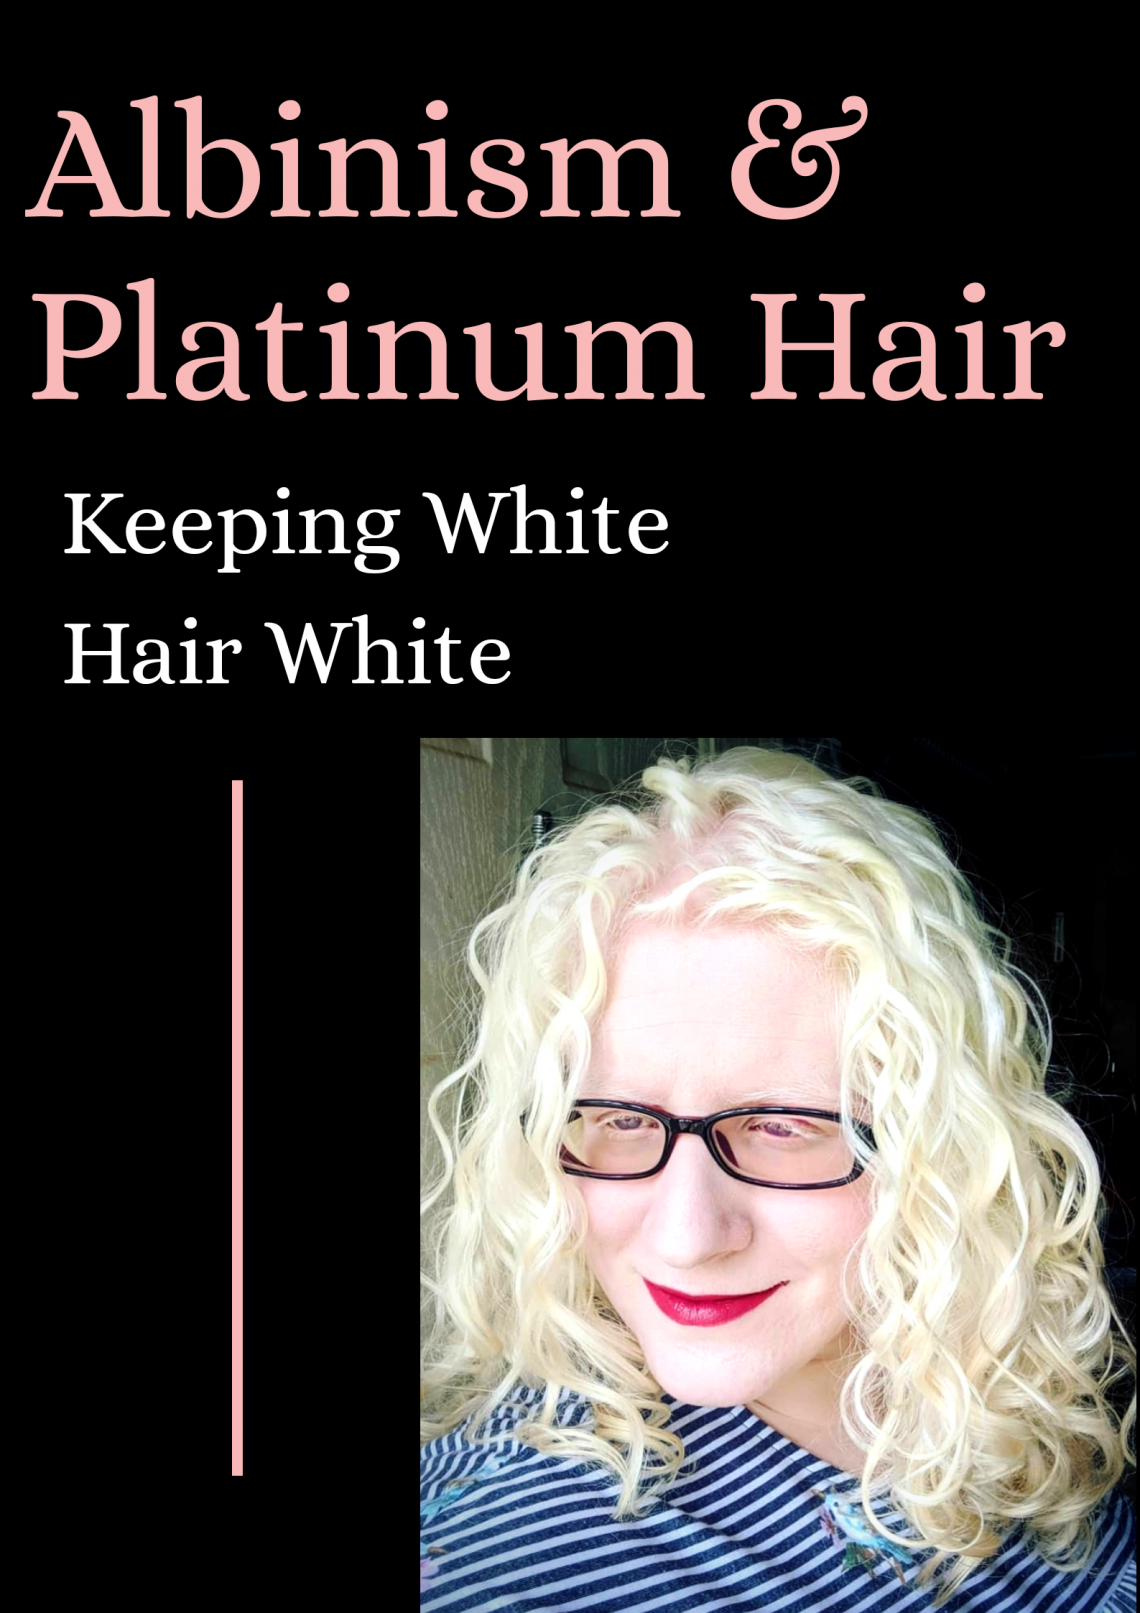 Albinism & platinum hair: keeping White hair White featured image